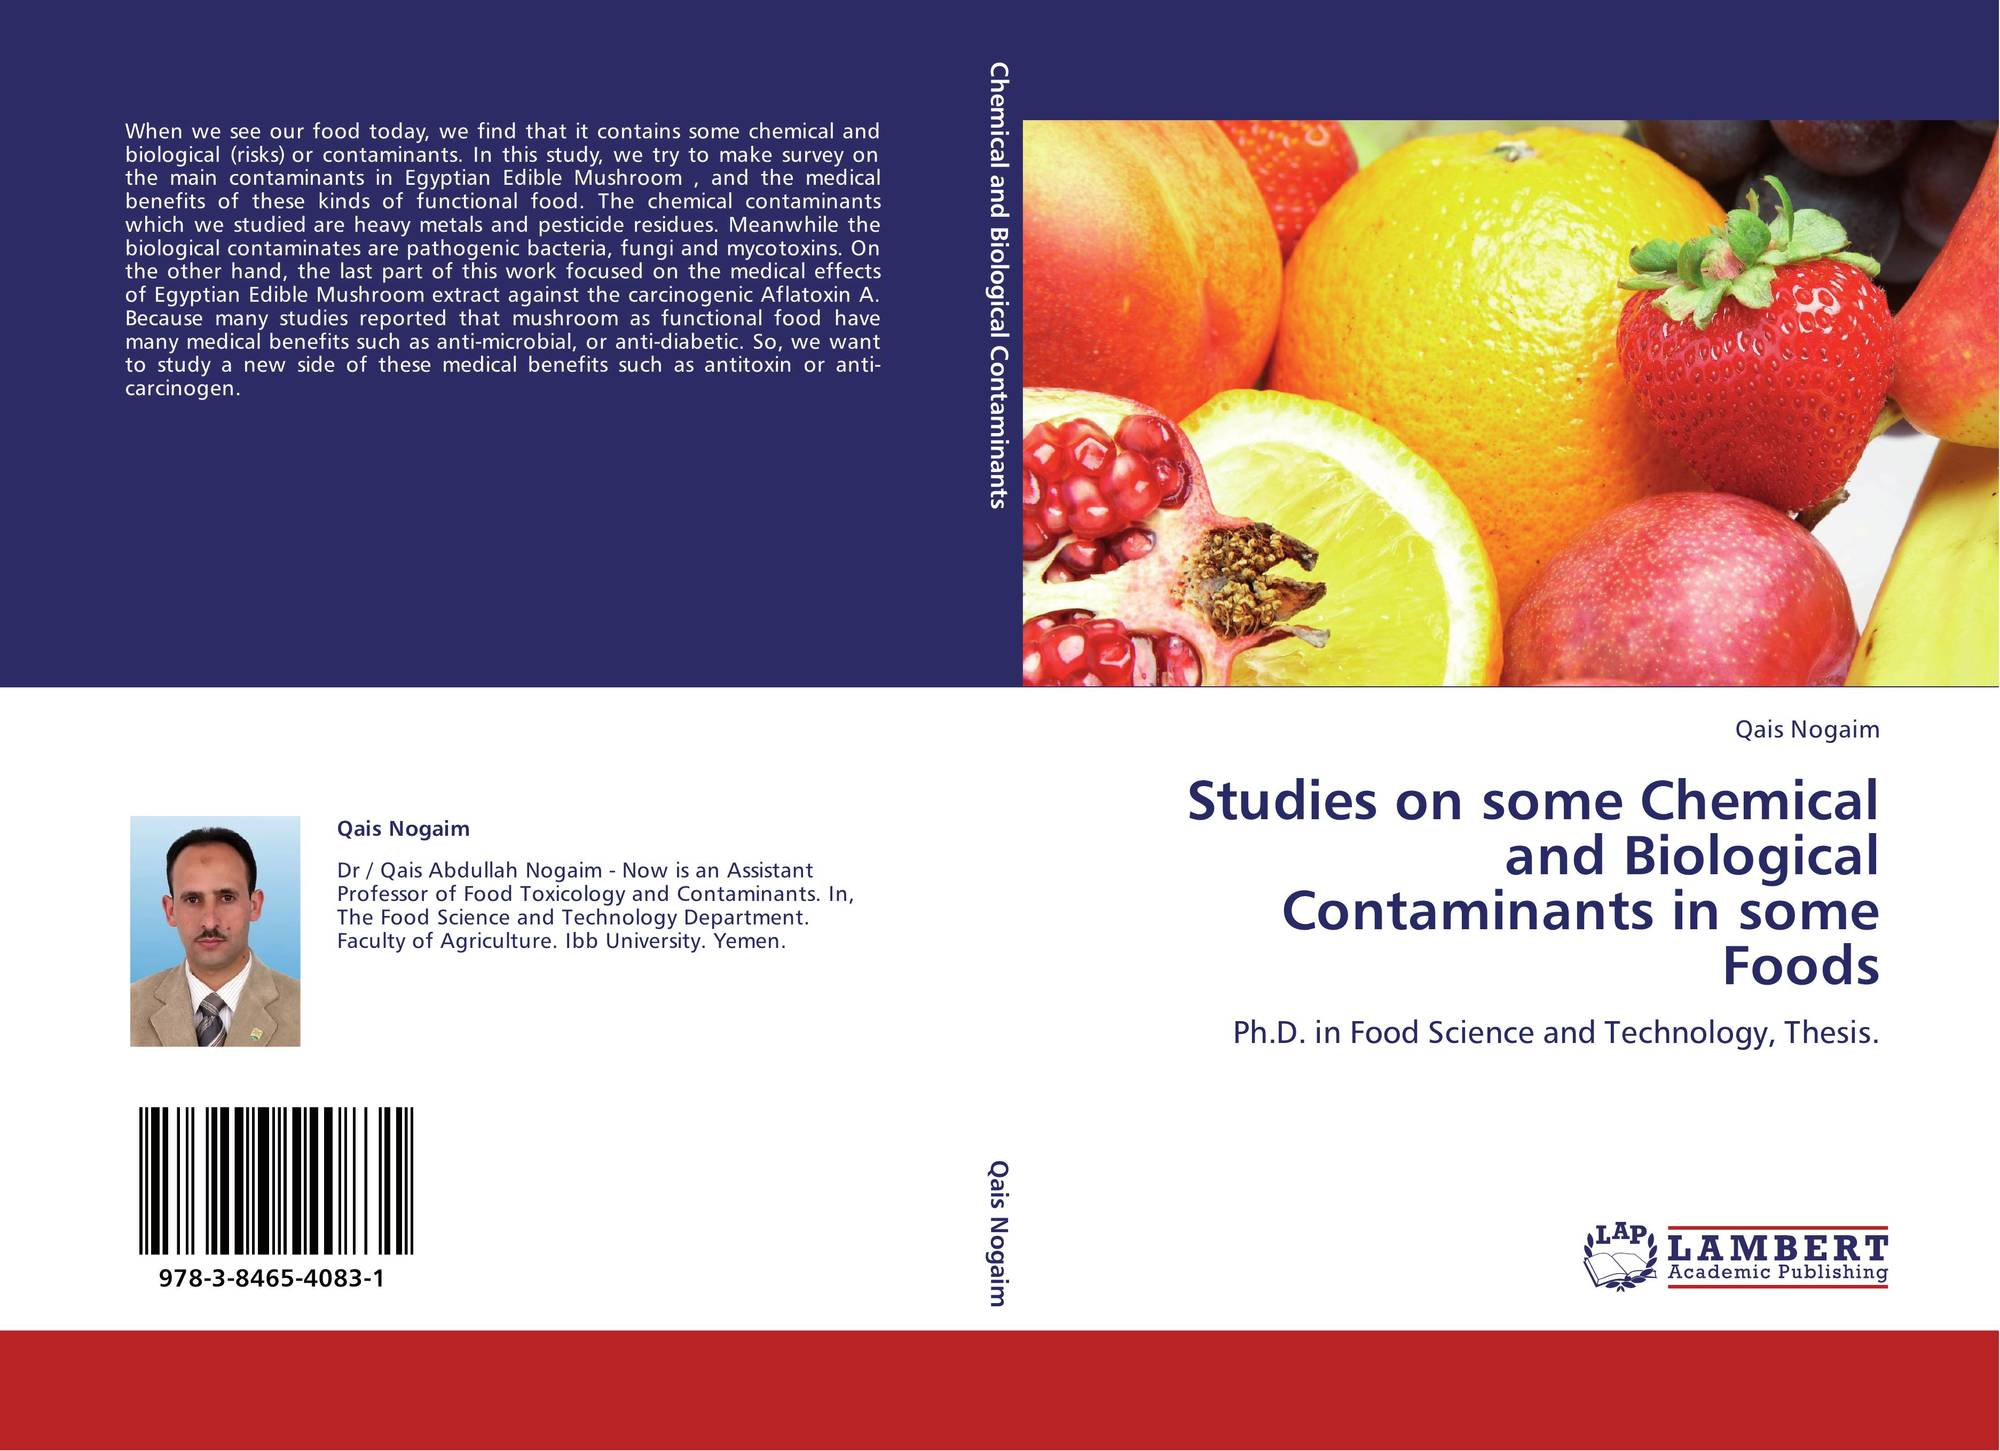 food chemistry phd thesis Chemistry is the science that covers composition, properties, structure and reactions of molecules, atoms and systems that include the two chemistry originated from the medieval art of alchemy, which sought to create gold through various transformations of materials.